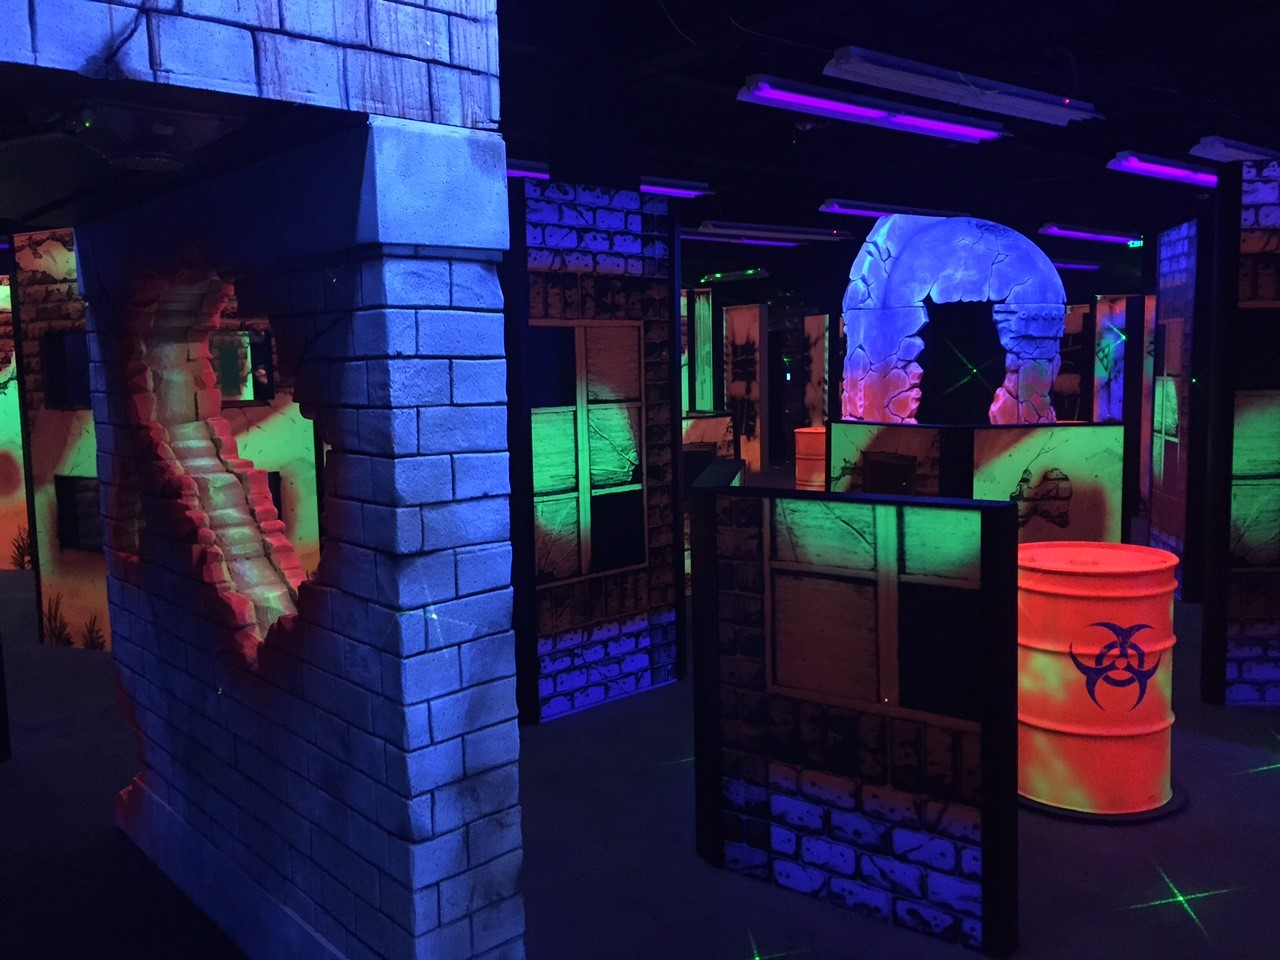 indoor mini golf in the dark with neon lit props